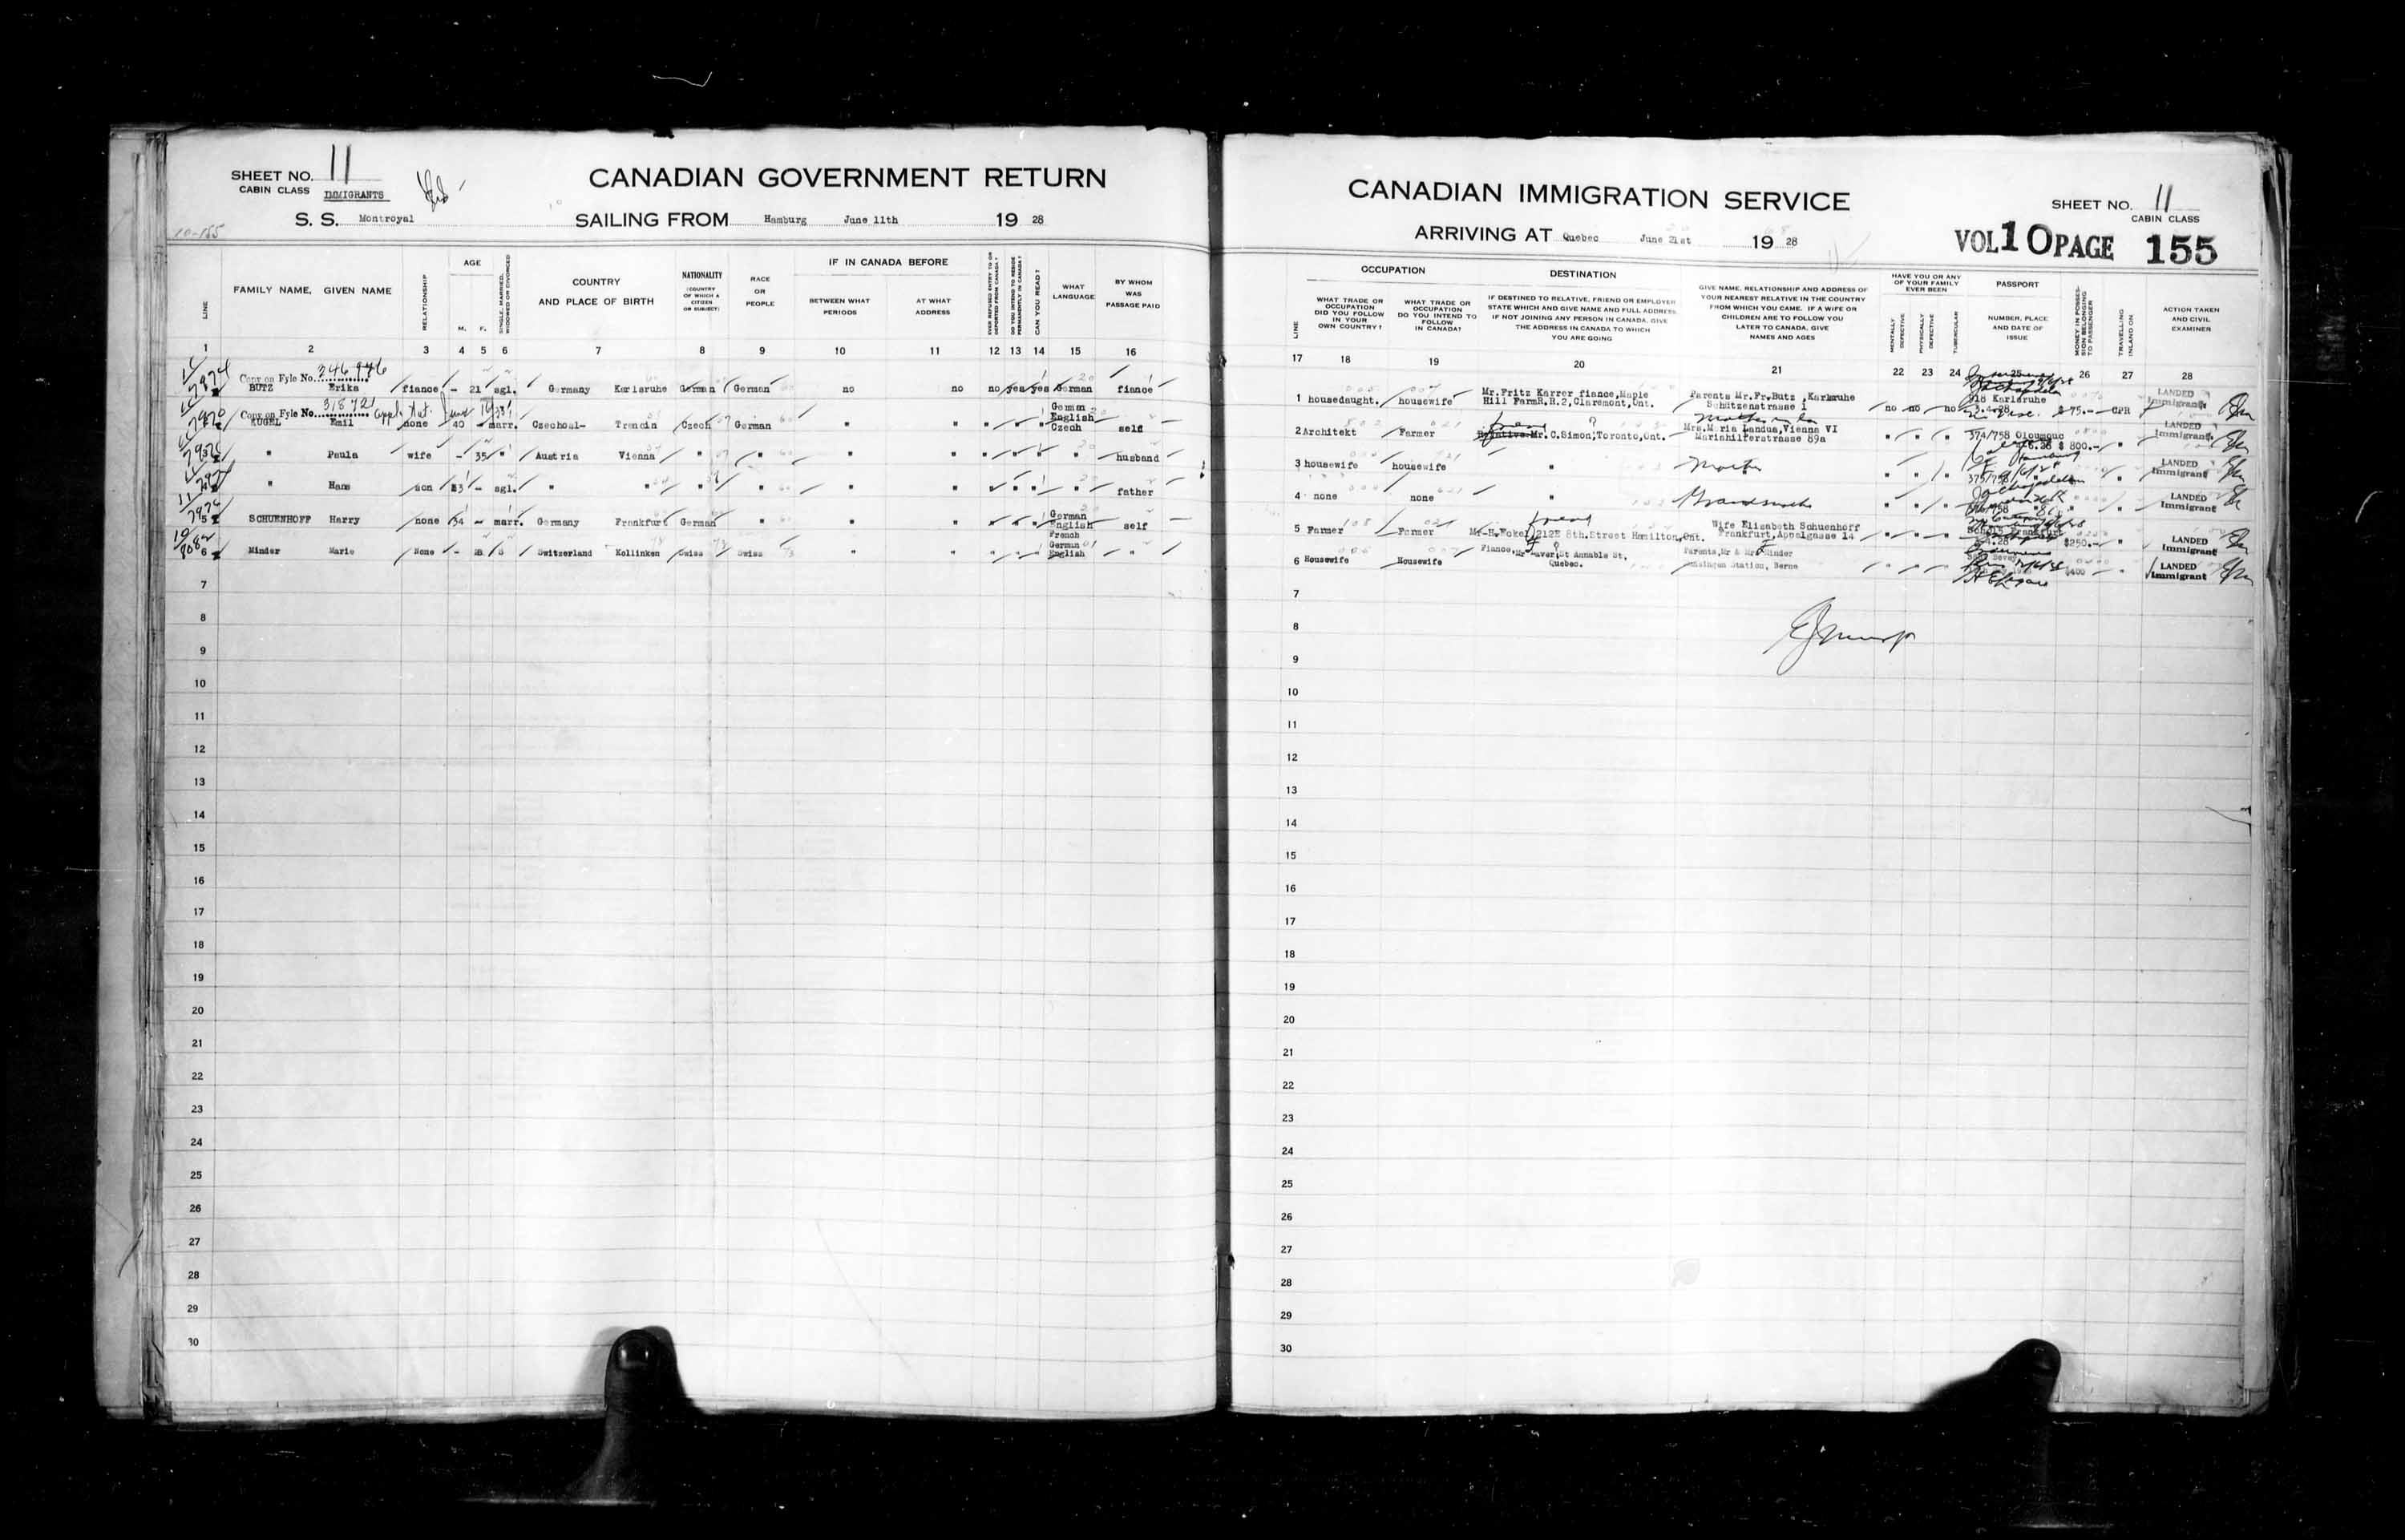 Title: Passenger Lists: Quebec City (1925-1935) - Mikan Number: 134839 - Microform: t-14743